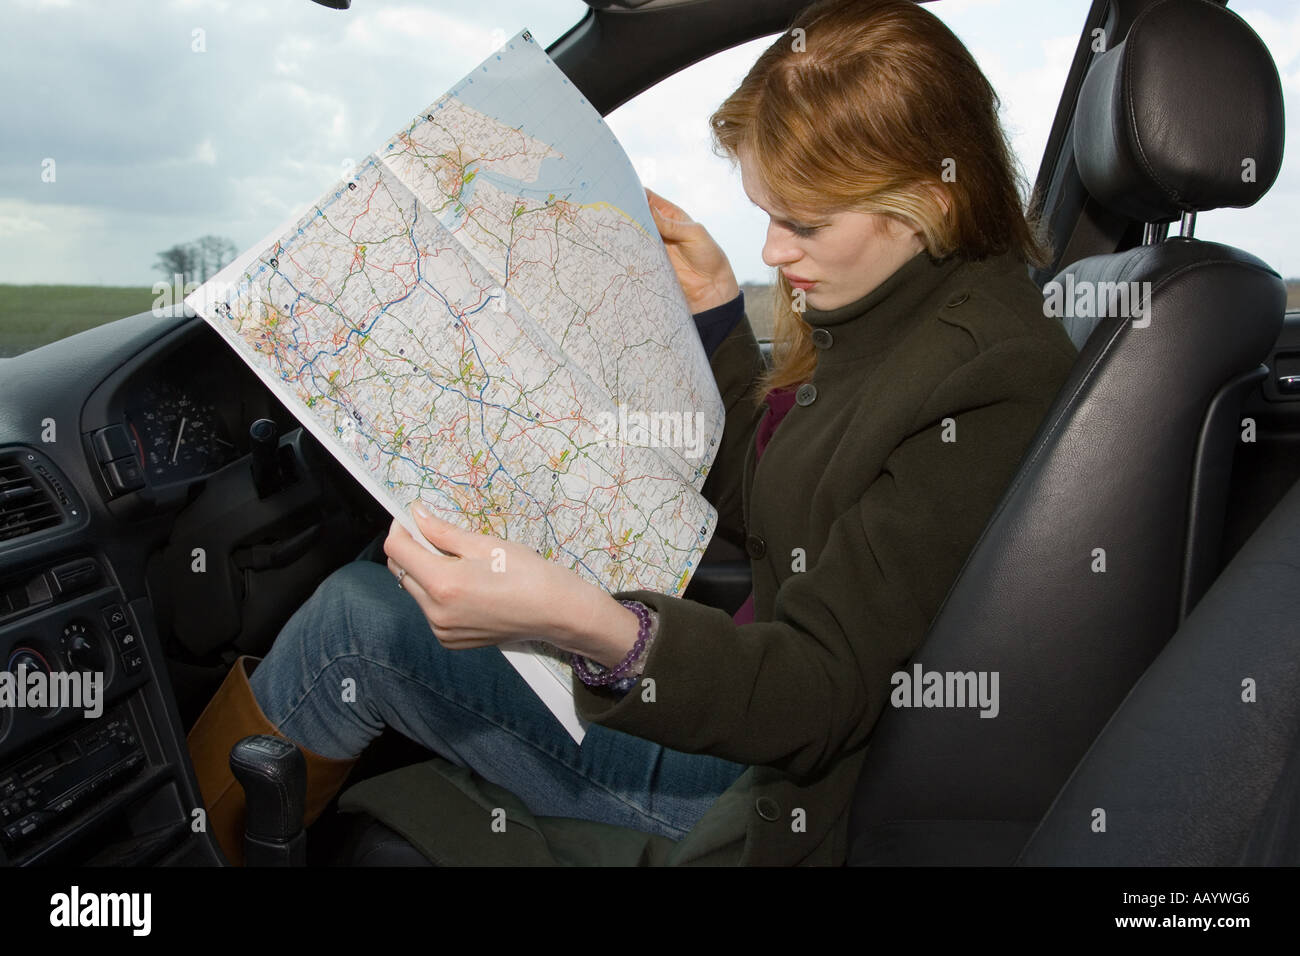 A woman driver reading a map for directions after becoming lost - Stock Image